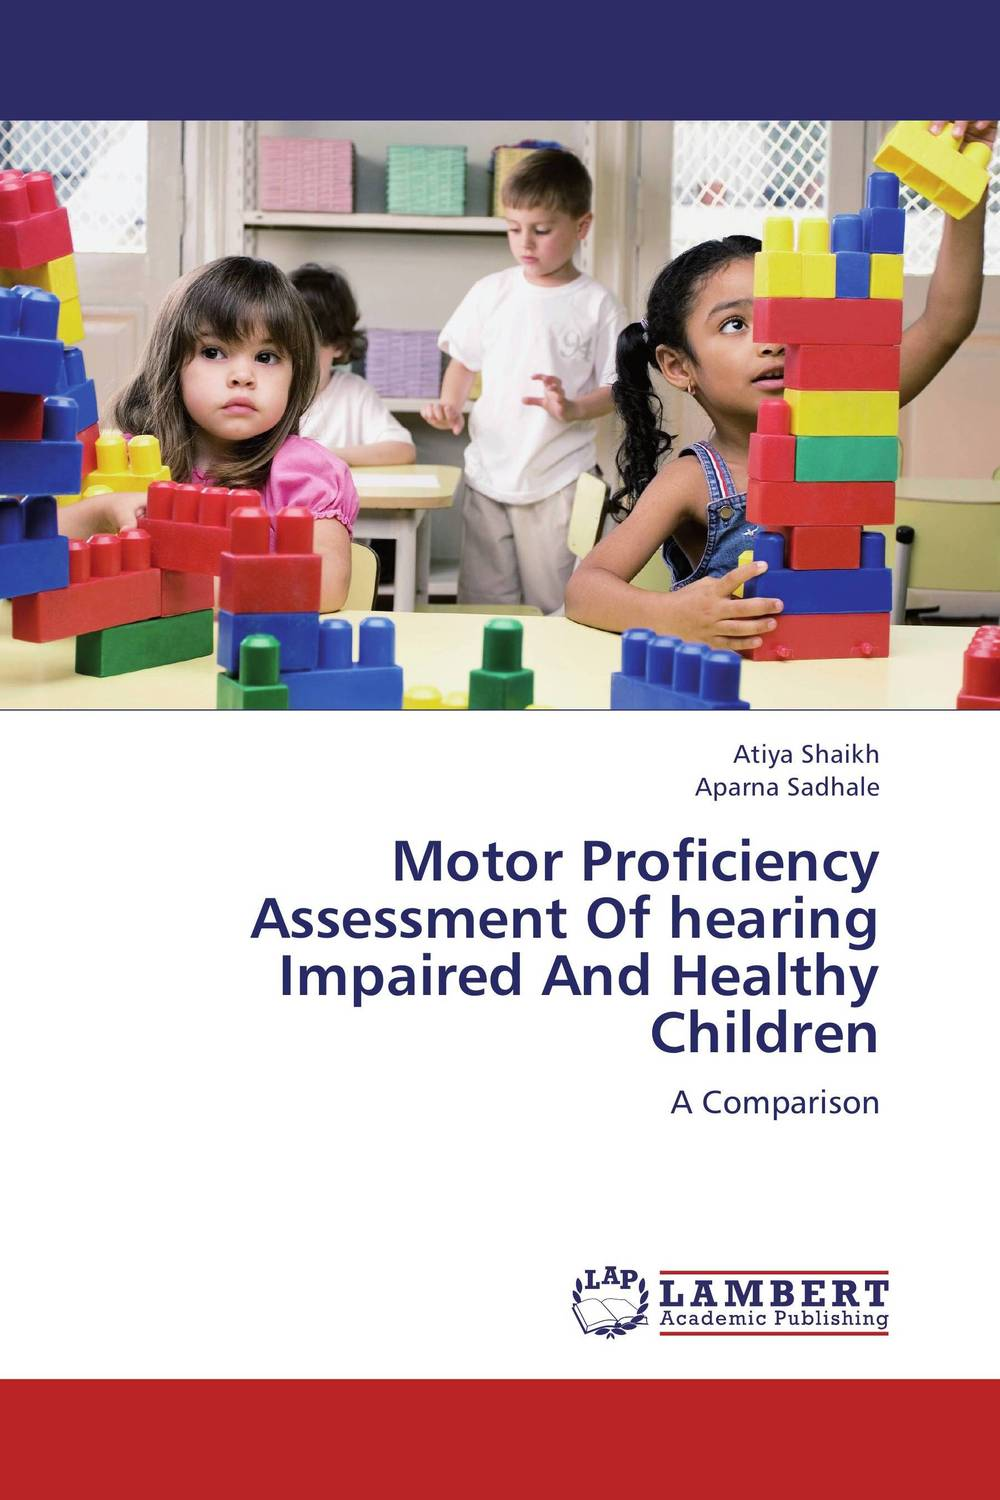 Motor Proficiency Assessment Of hearing Impaired And Healthy Children muhammad azeem development of math proficiency test using item response theory irt